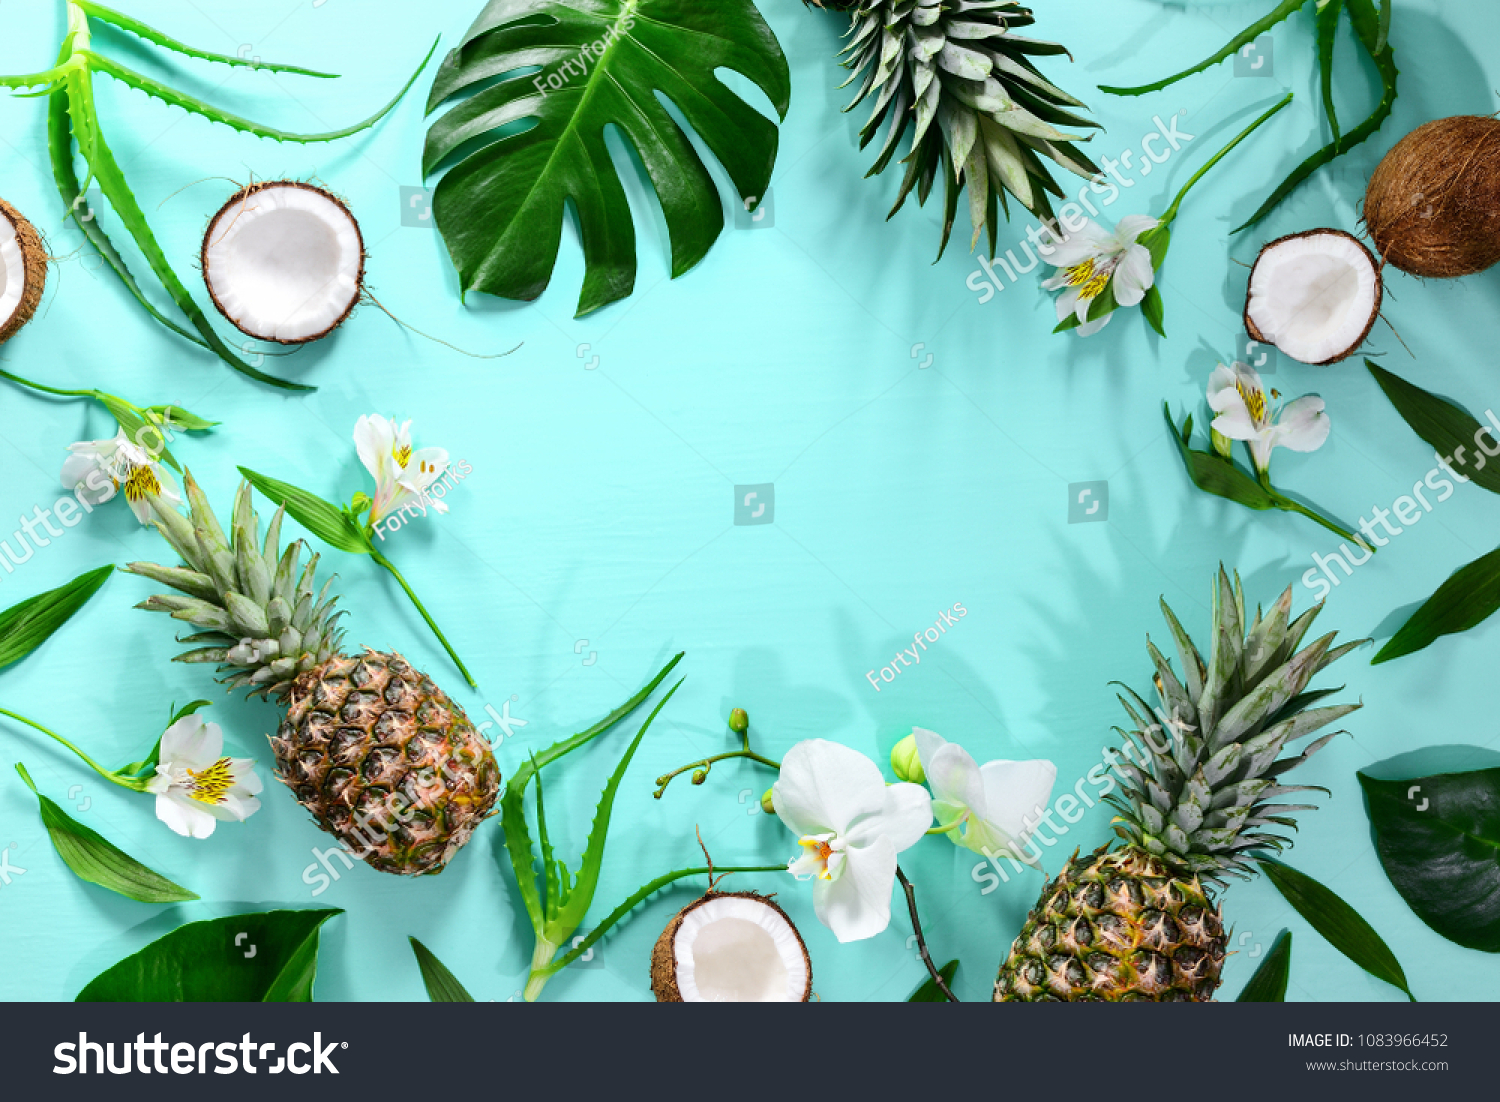 Summer tropical background with a space for a text, various fruits, green leaves and flowers arranged in a way that light shadows are fallen on the background surface, helping to keep some sum #1083966452